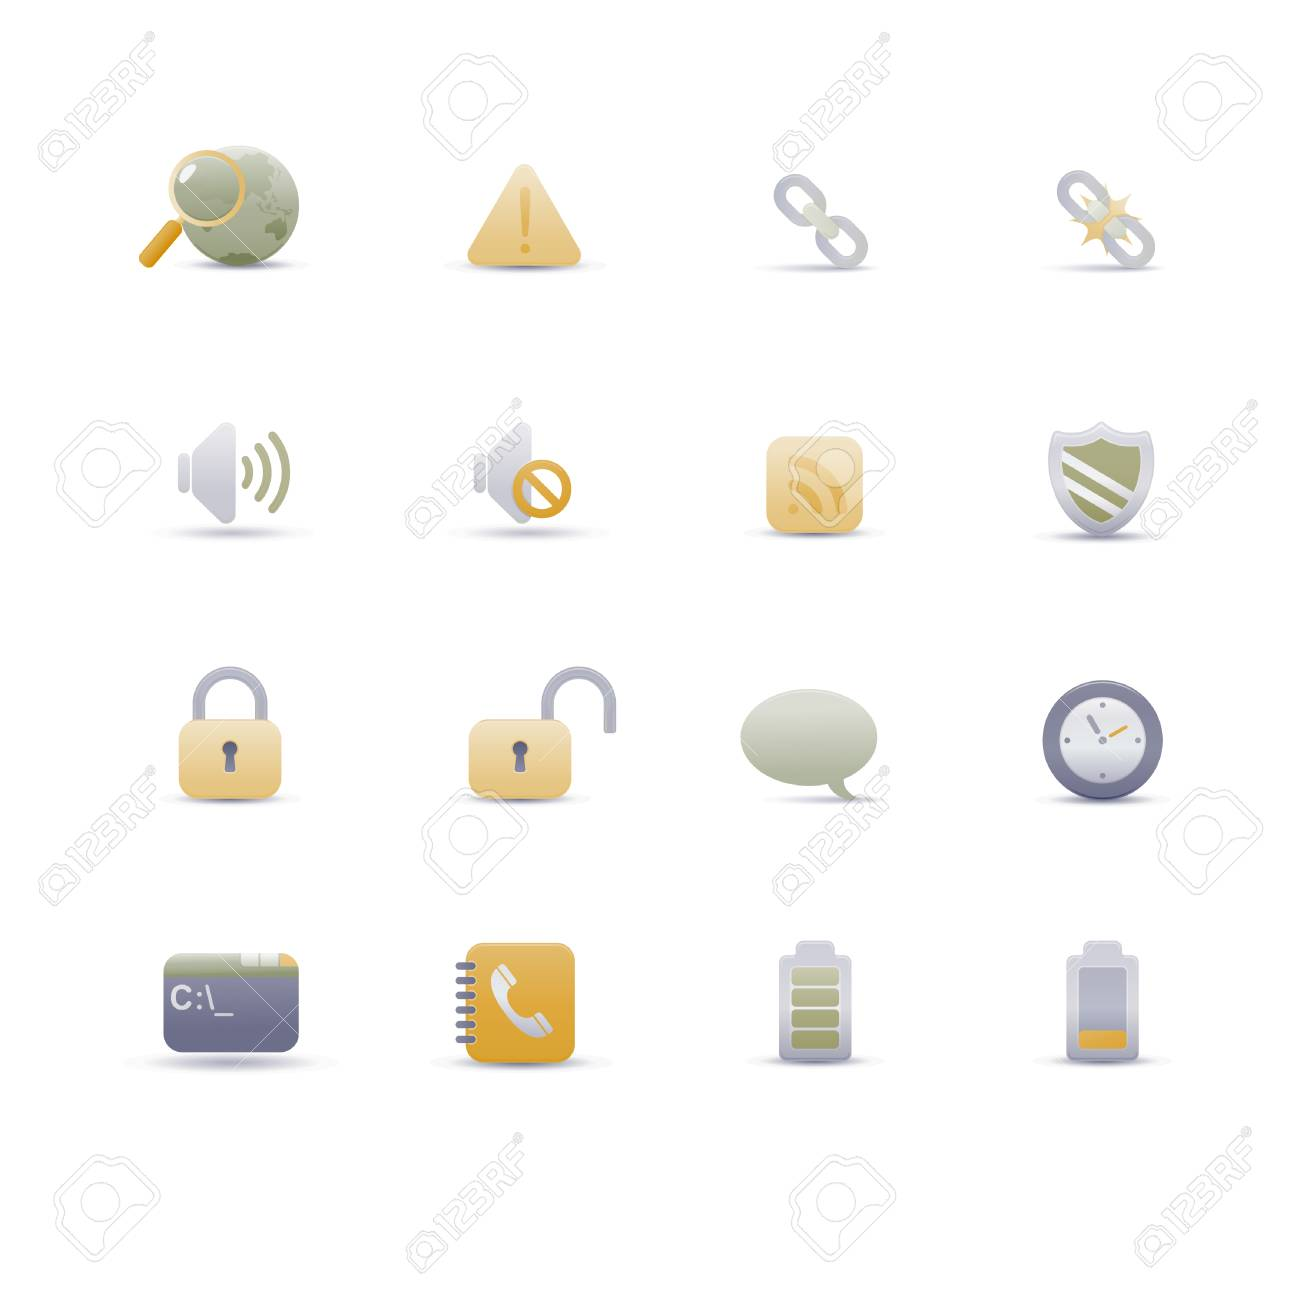 Vector illustration � set of elegant simple icons for common computer functions Stock Vector - 4907026